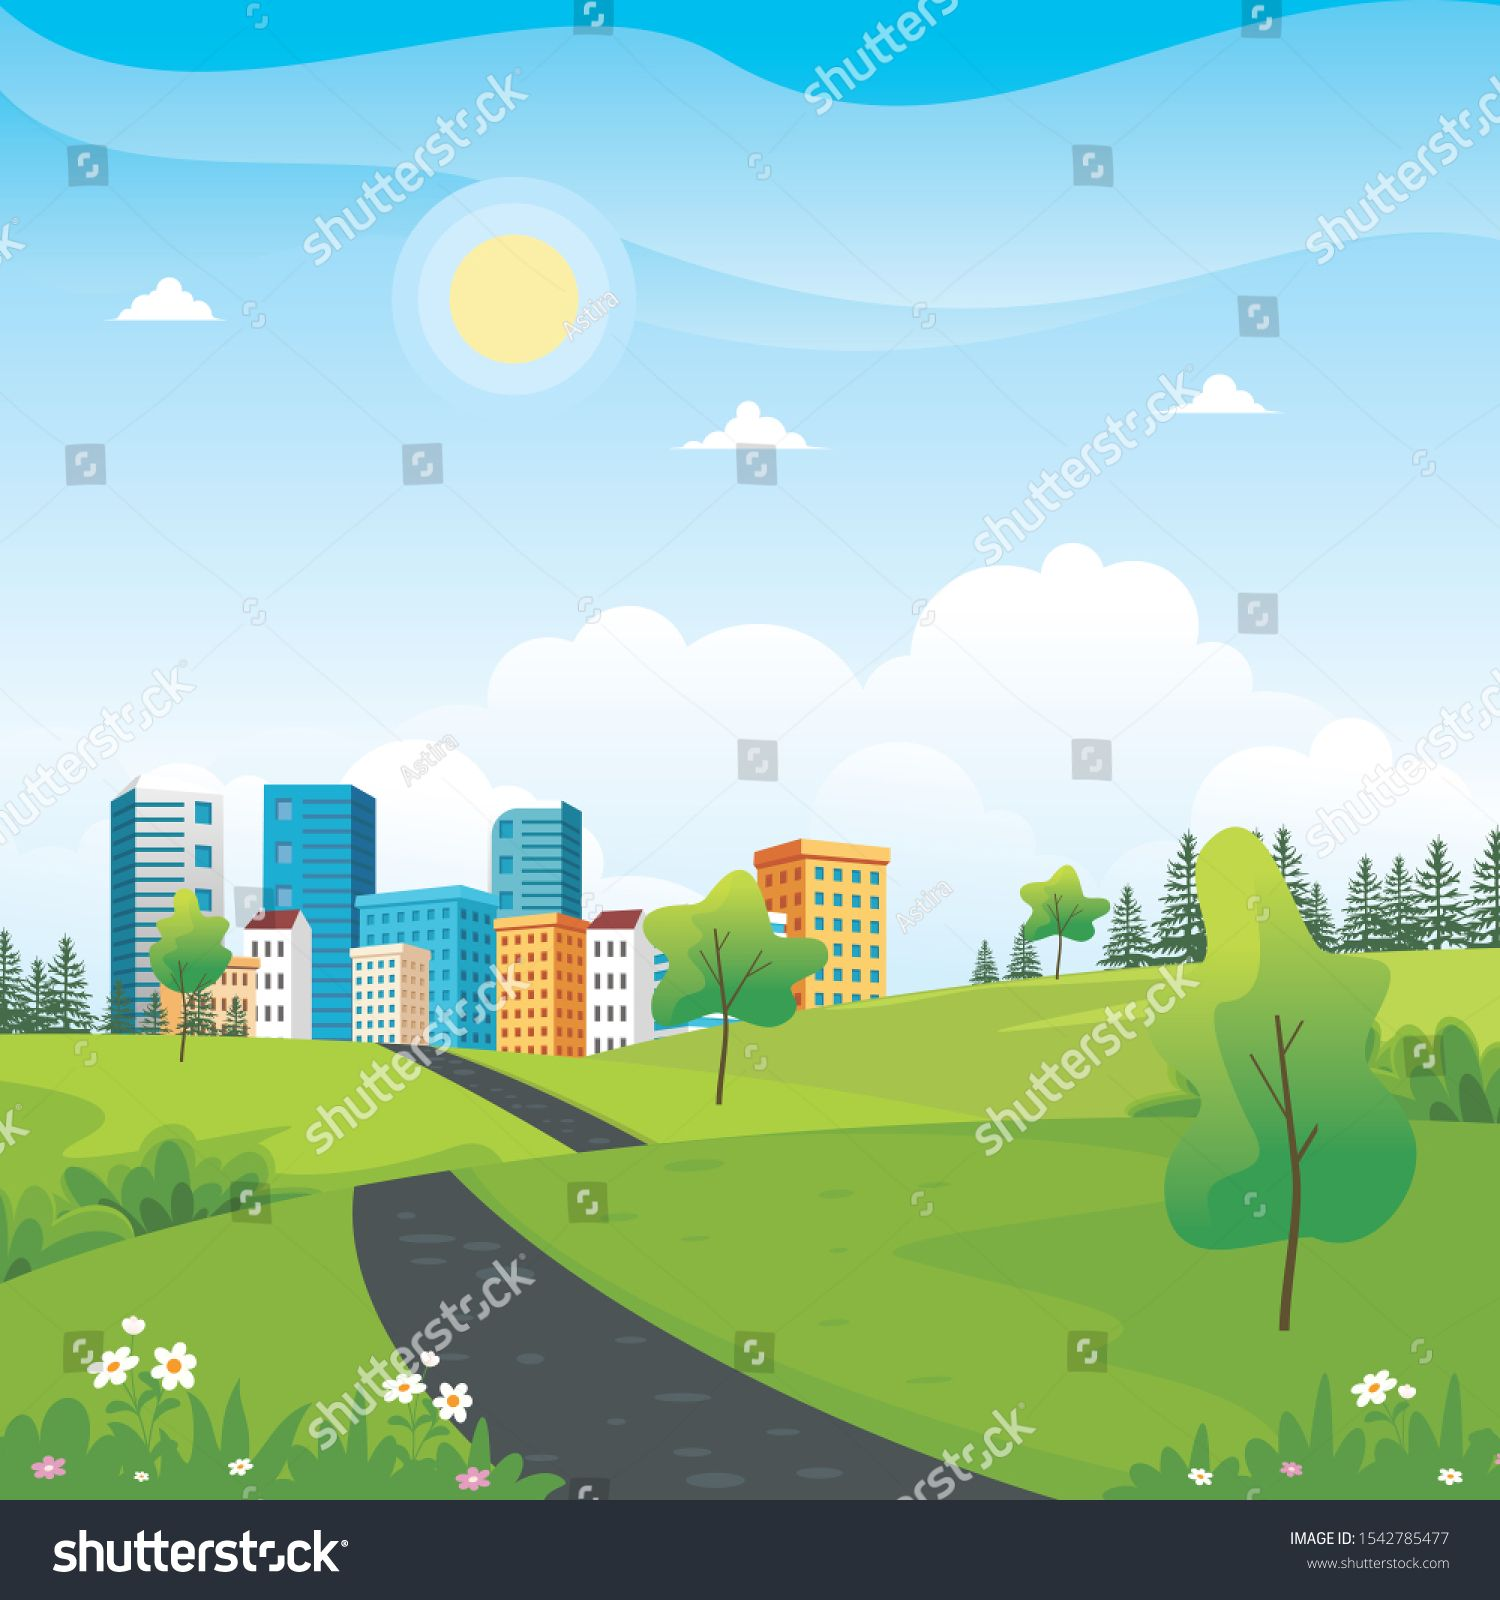 Summer City Park With Beautiful Scenery Landscape Vector Illustration Sponsored Affiliate Park Beautiful Summer City Park City Scenery Landscape